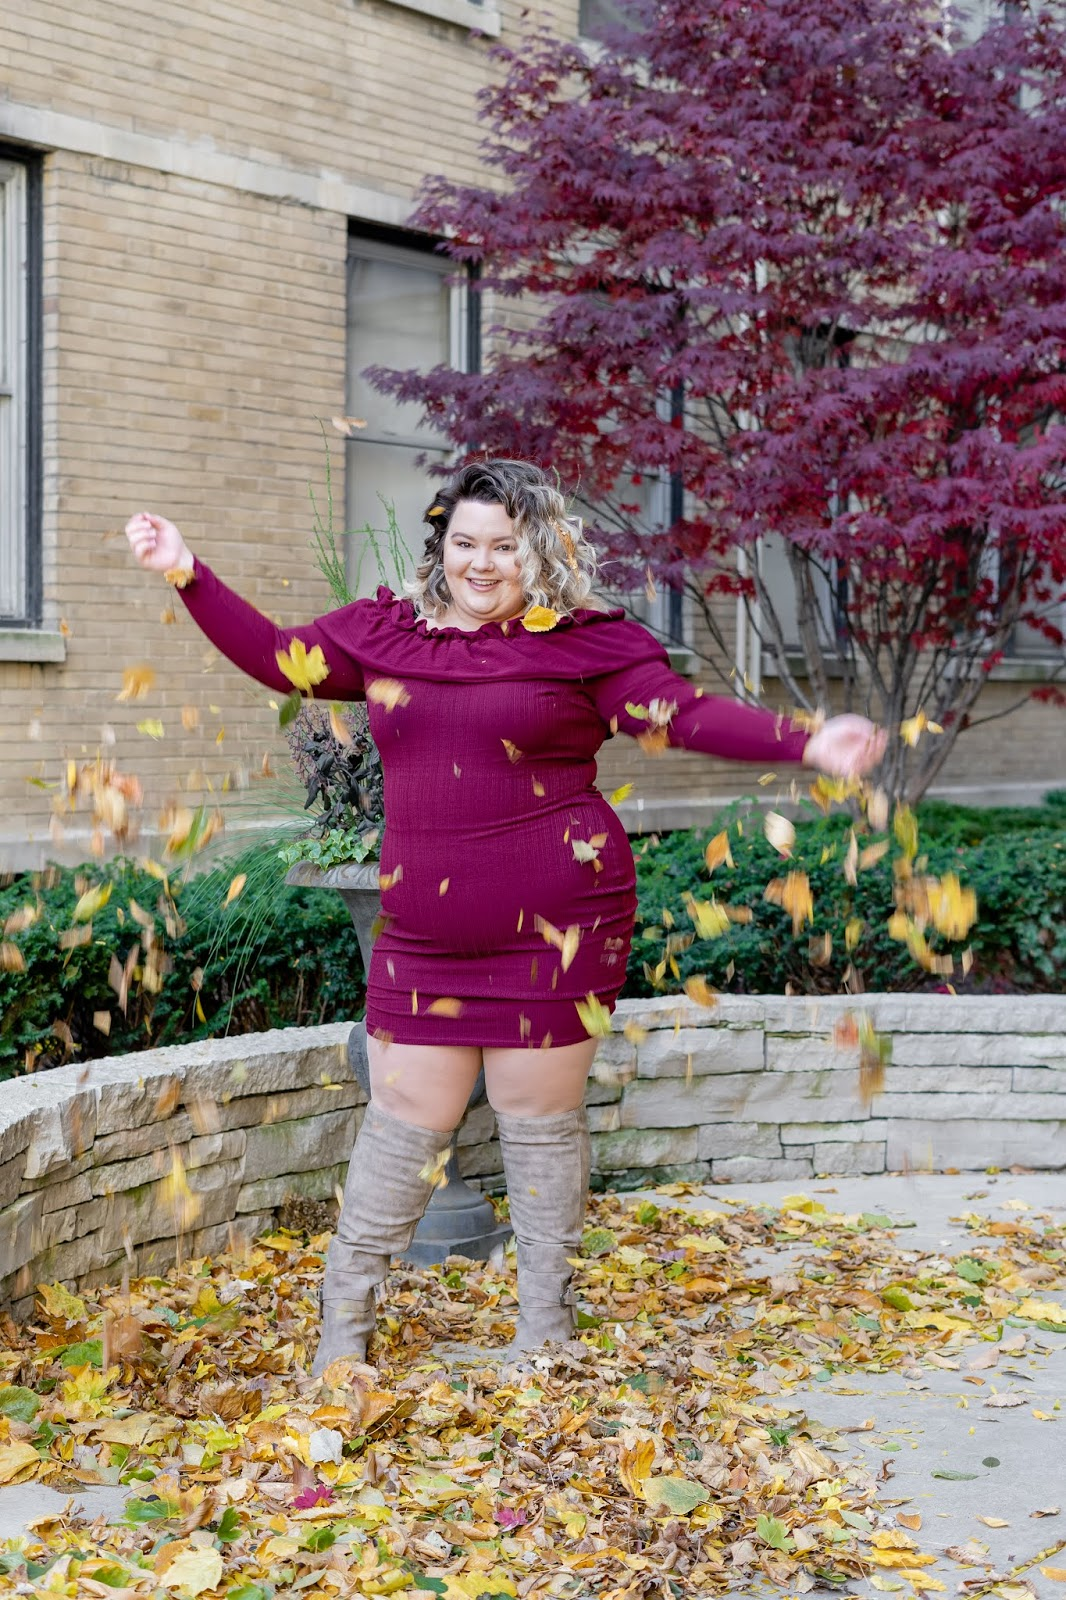 natalie craig, natalie in the city, plus size fall fashion, 2018, off the shoulder dress, burgundy dresses, fashion to figure, new york and company, chicago, chicago plus size fashion blogger, petite plus size fashion blogger, just fab, wide calf boots